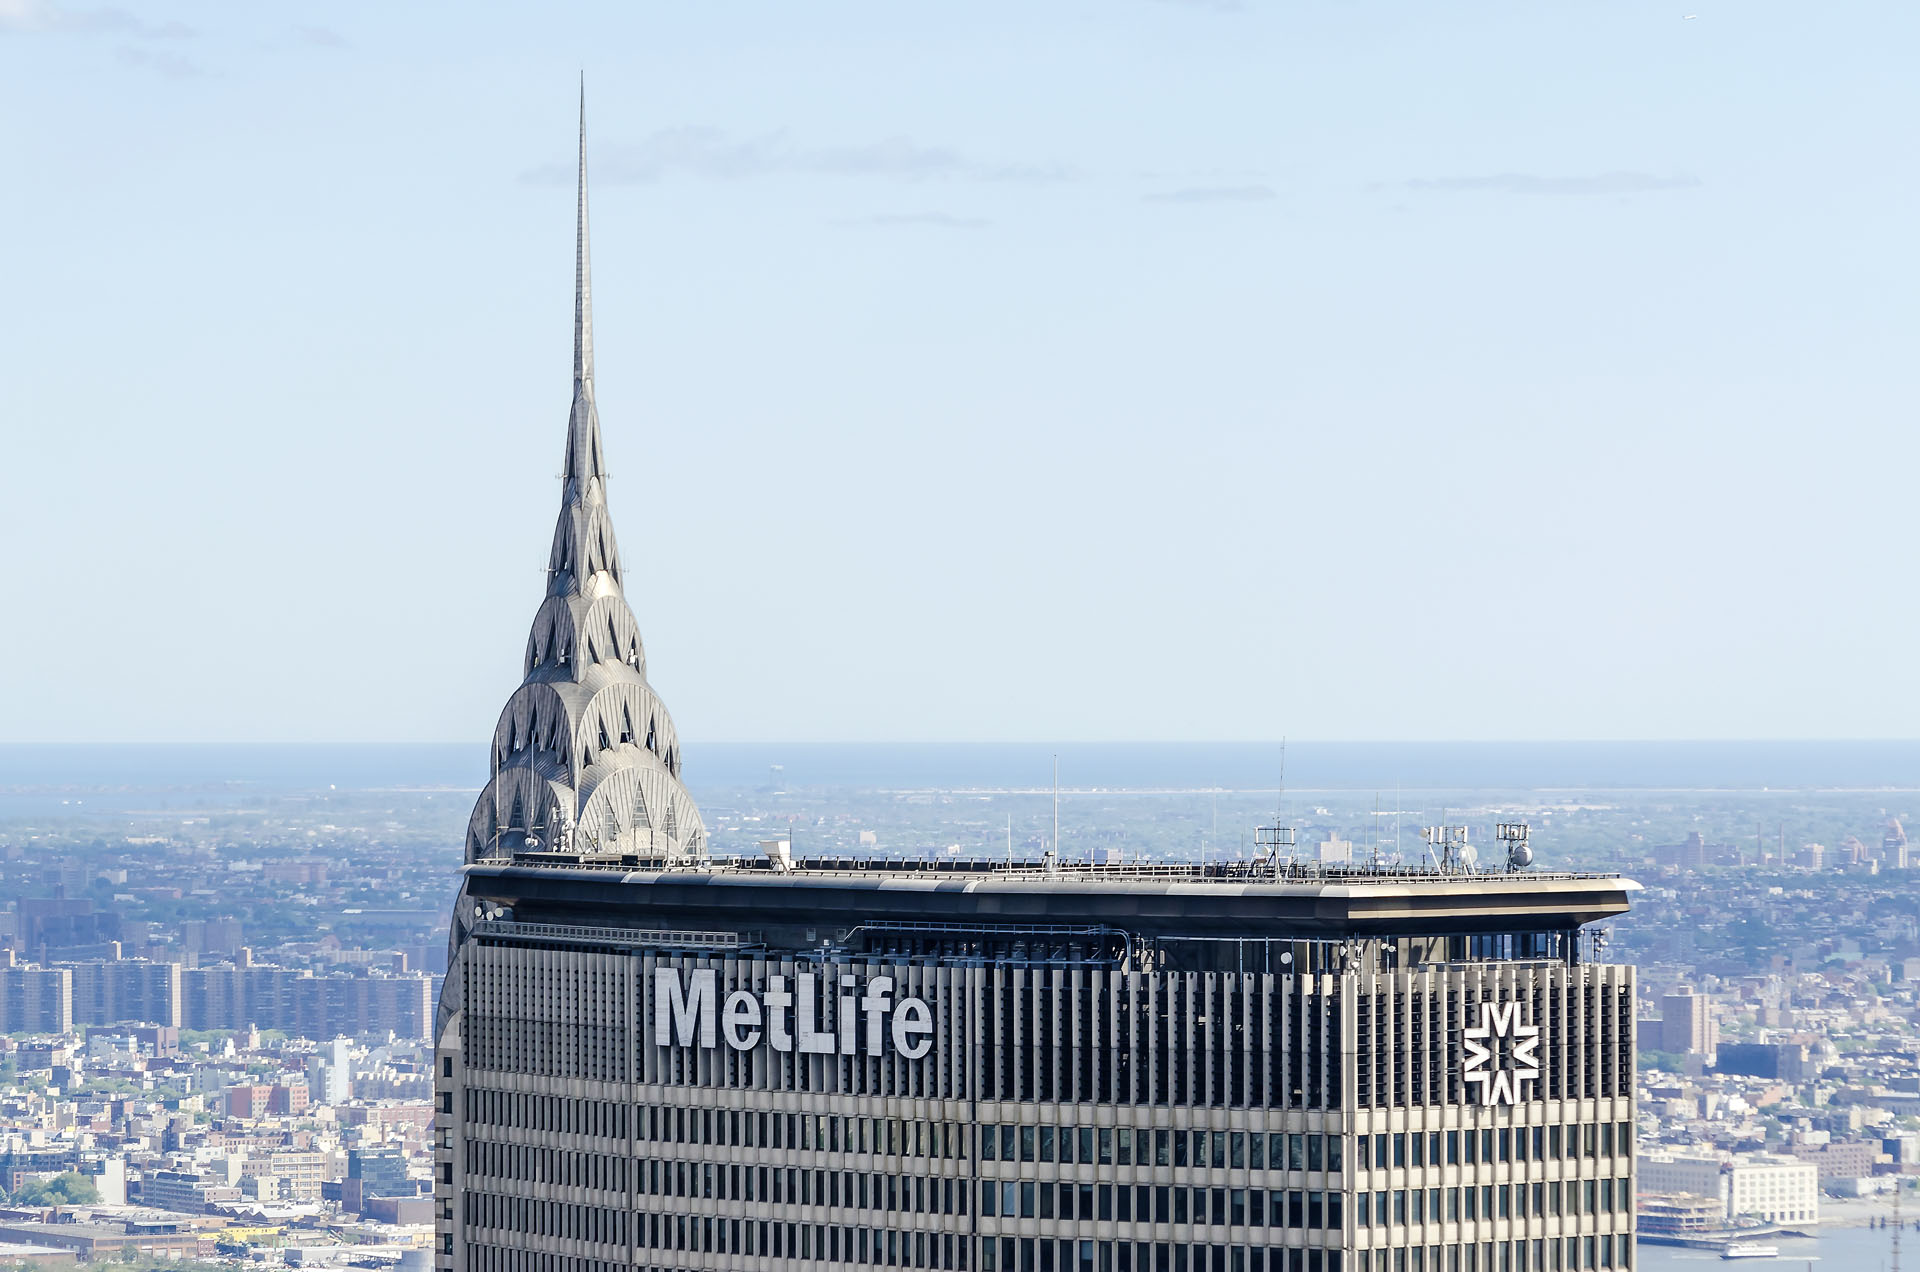 Aerial view of Chrysler and MetLife Buildings, New York, USA